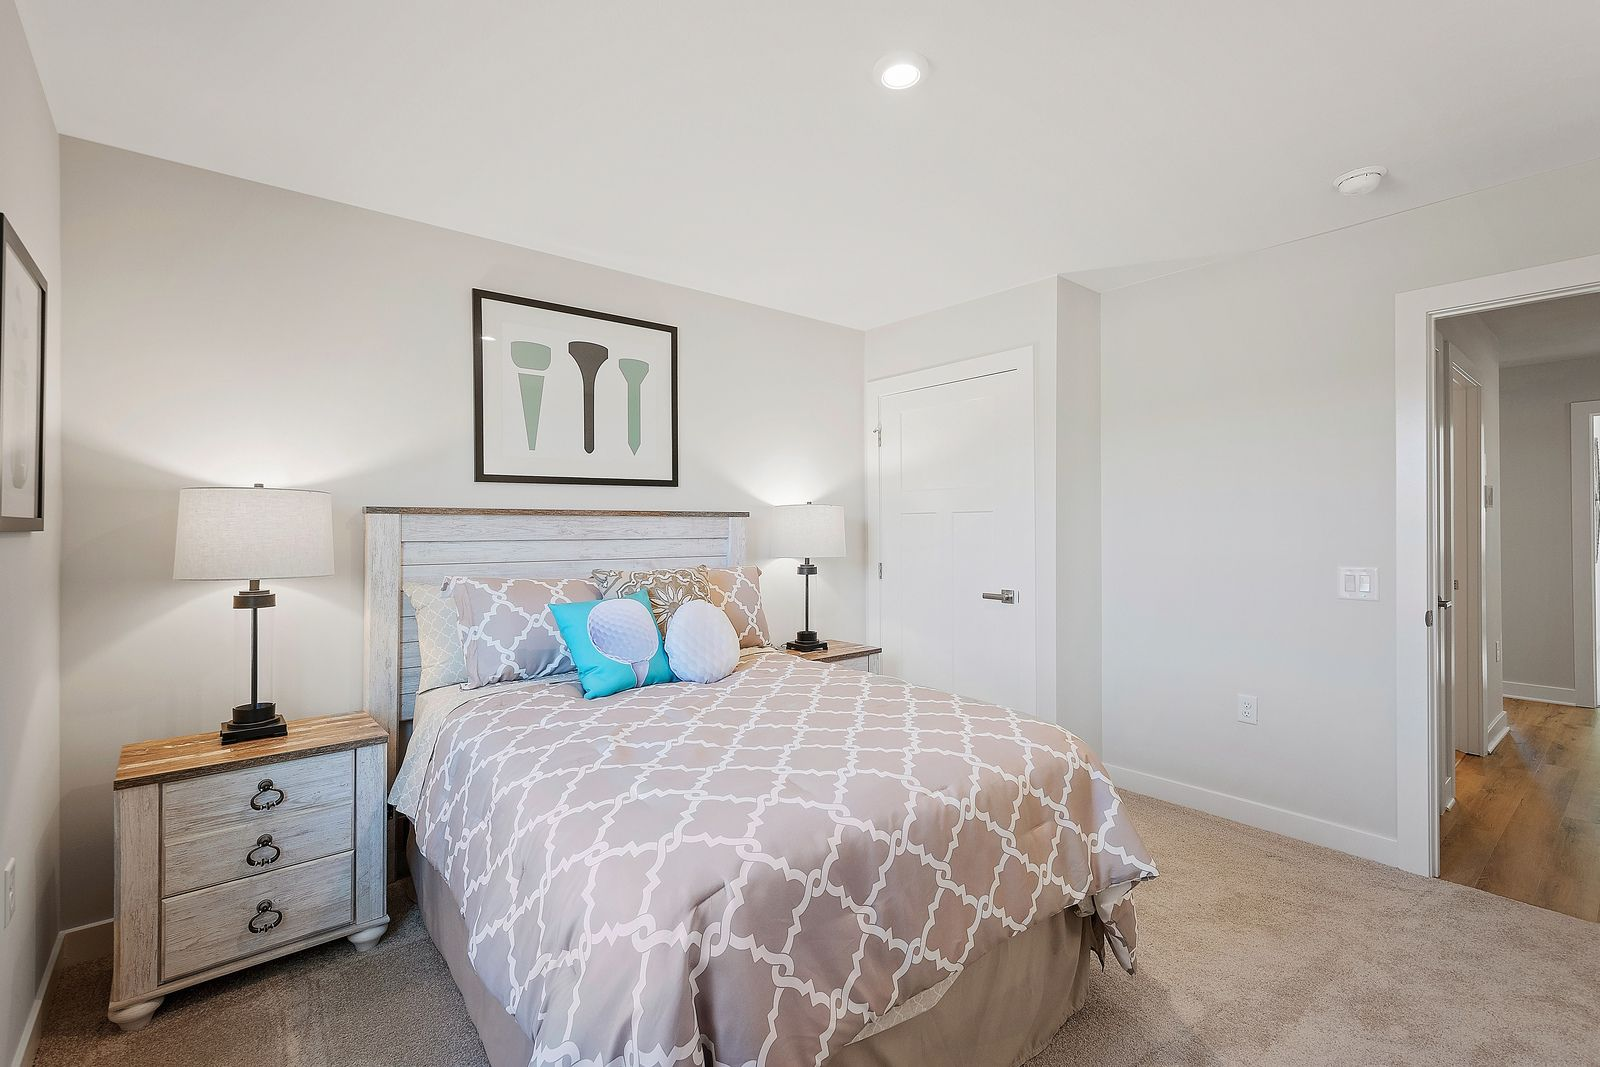 Bedroom featured in the Dominica Spring By Ryan Homes in Chicago, IL